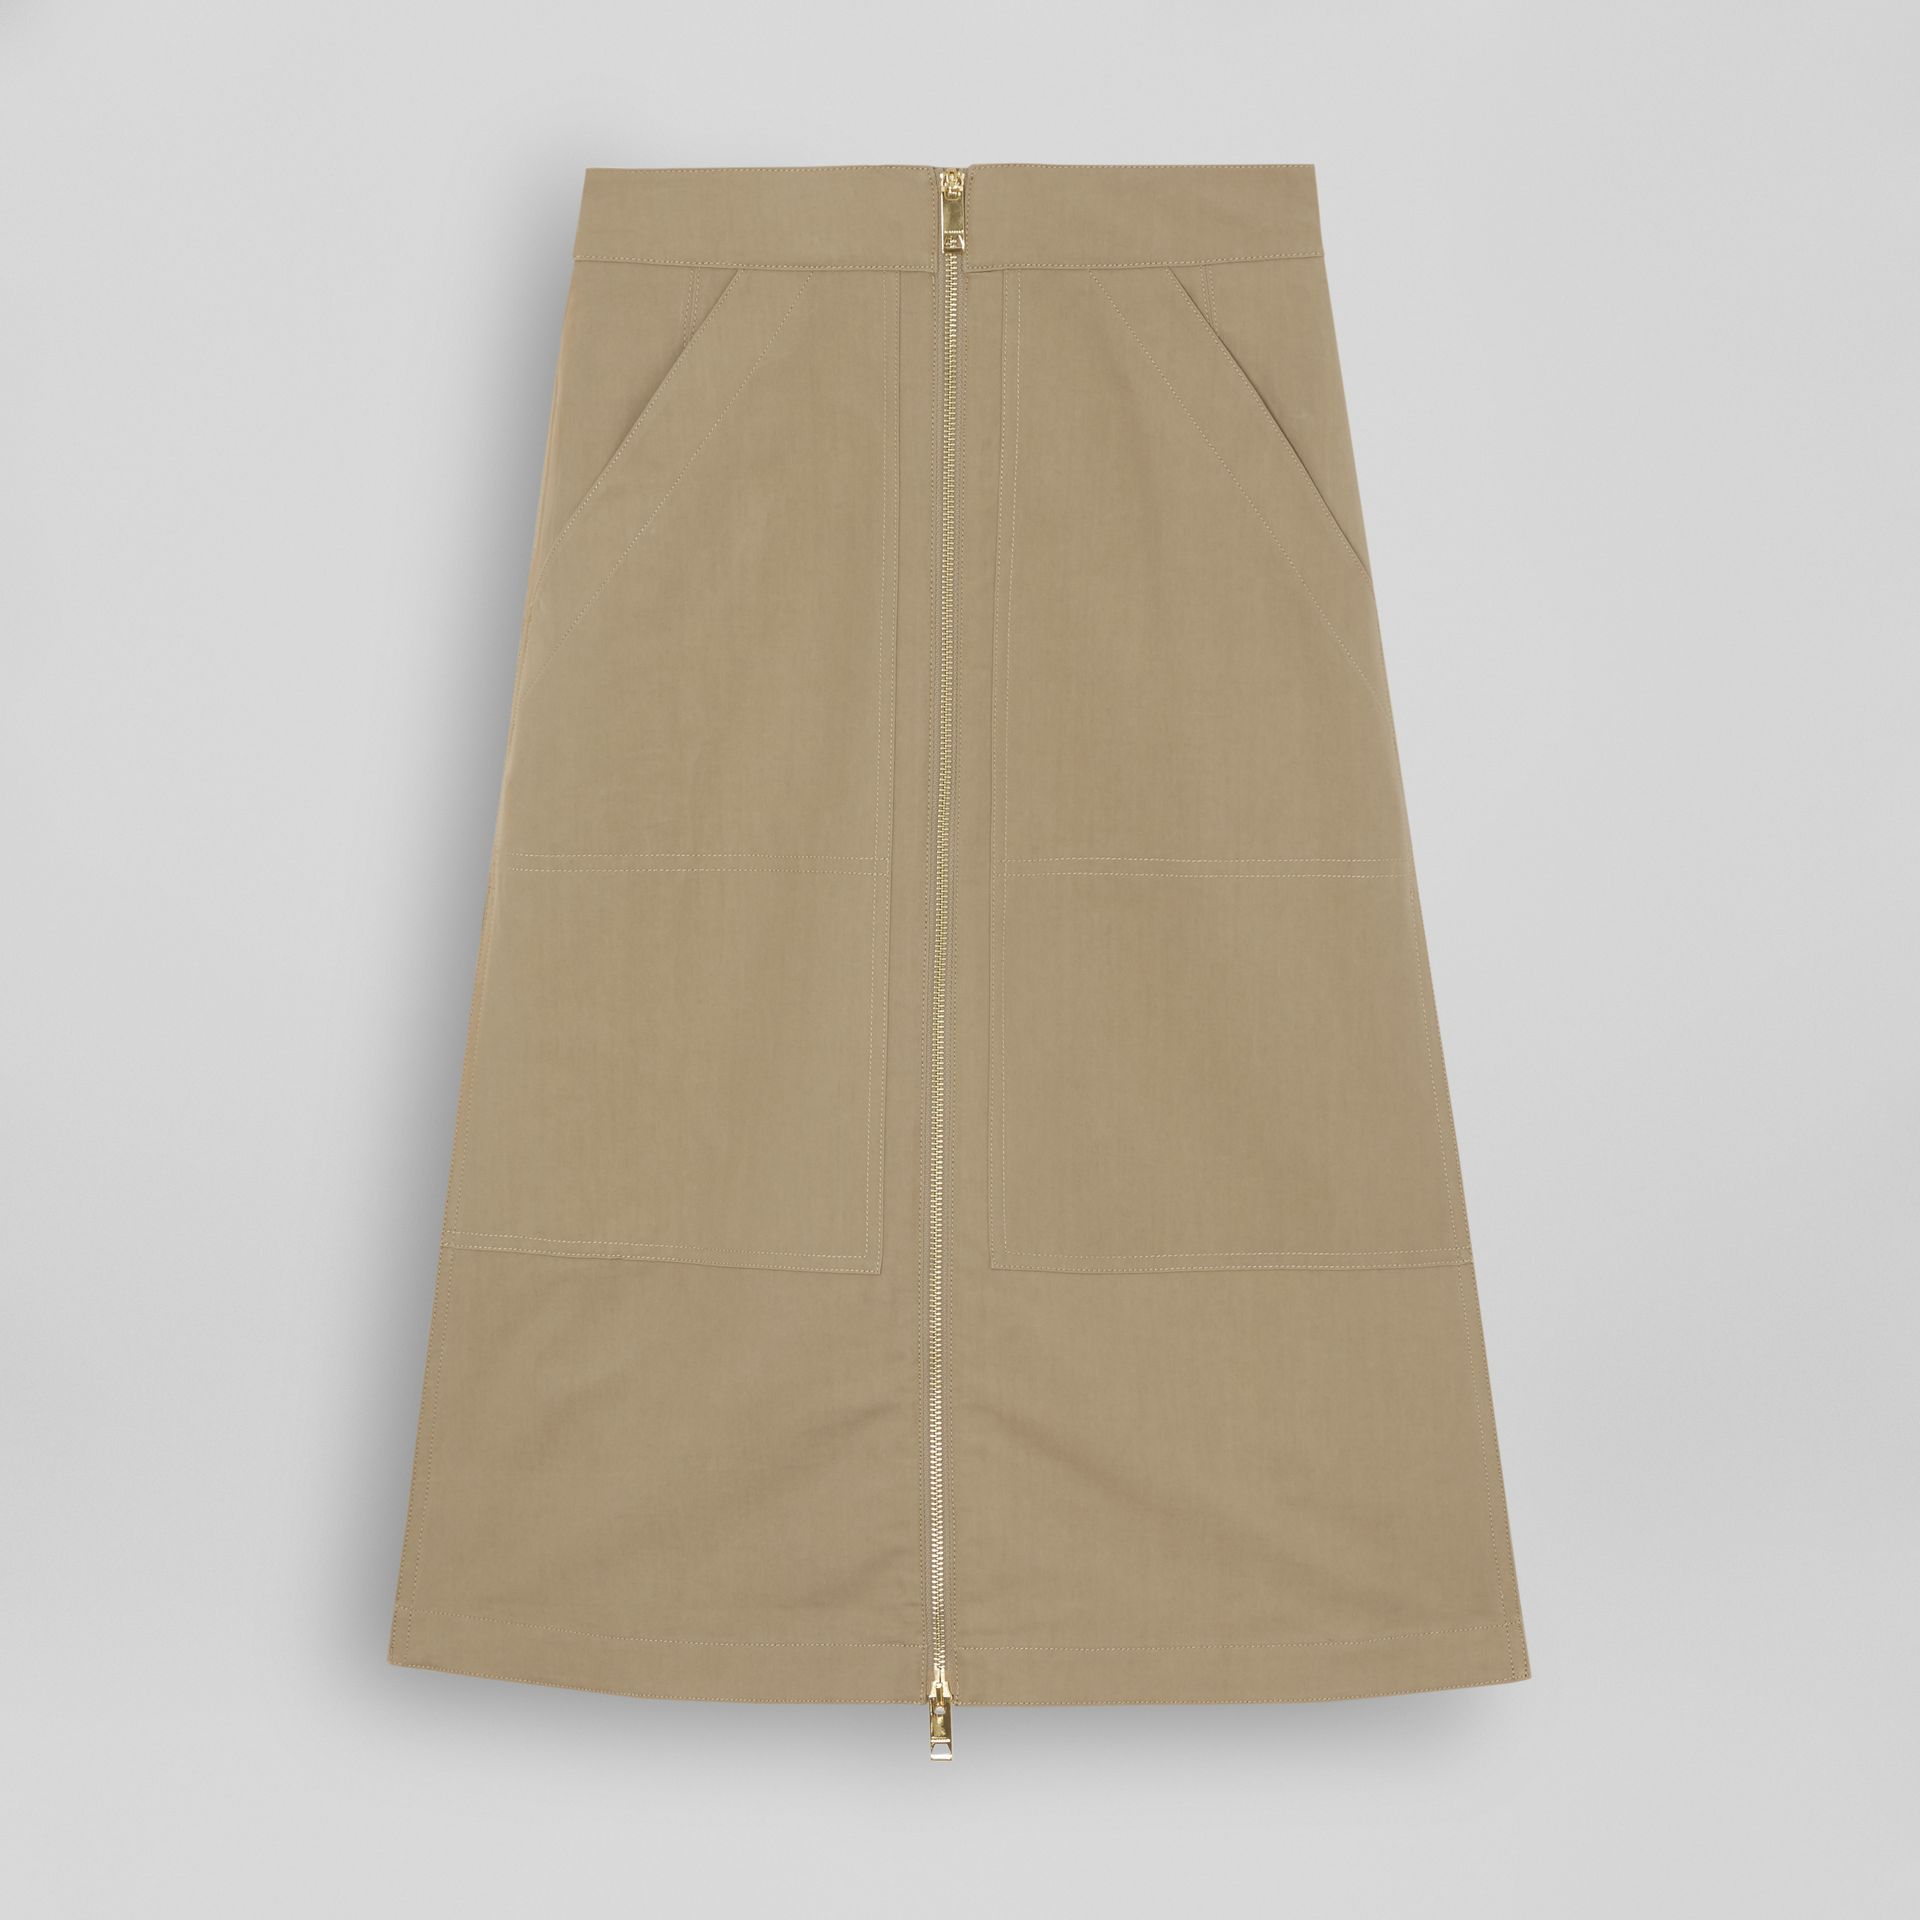 Cotton Silk High-waisted Skirt in Beige - Women | Burberry - gallery image 2